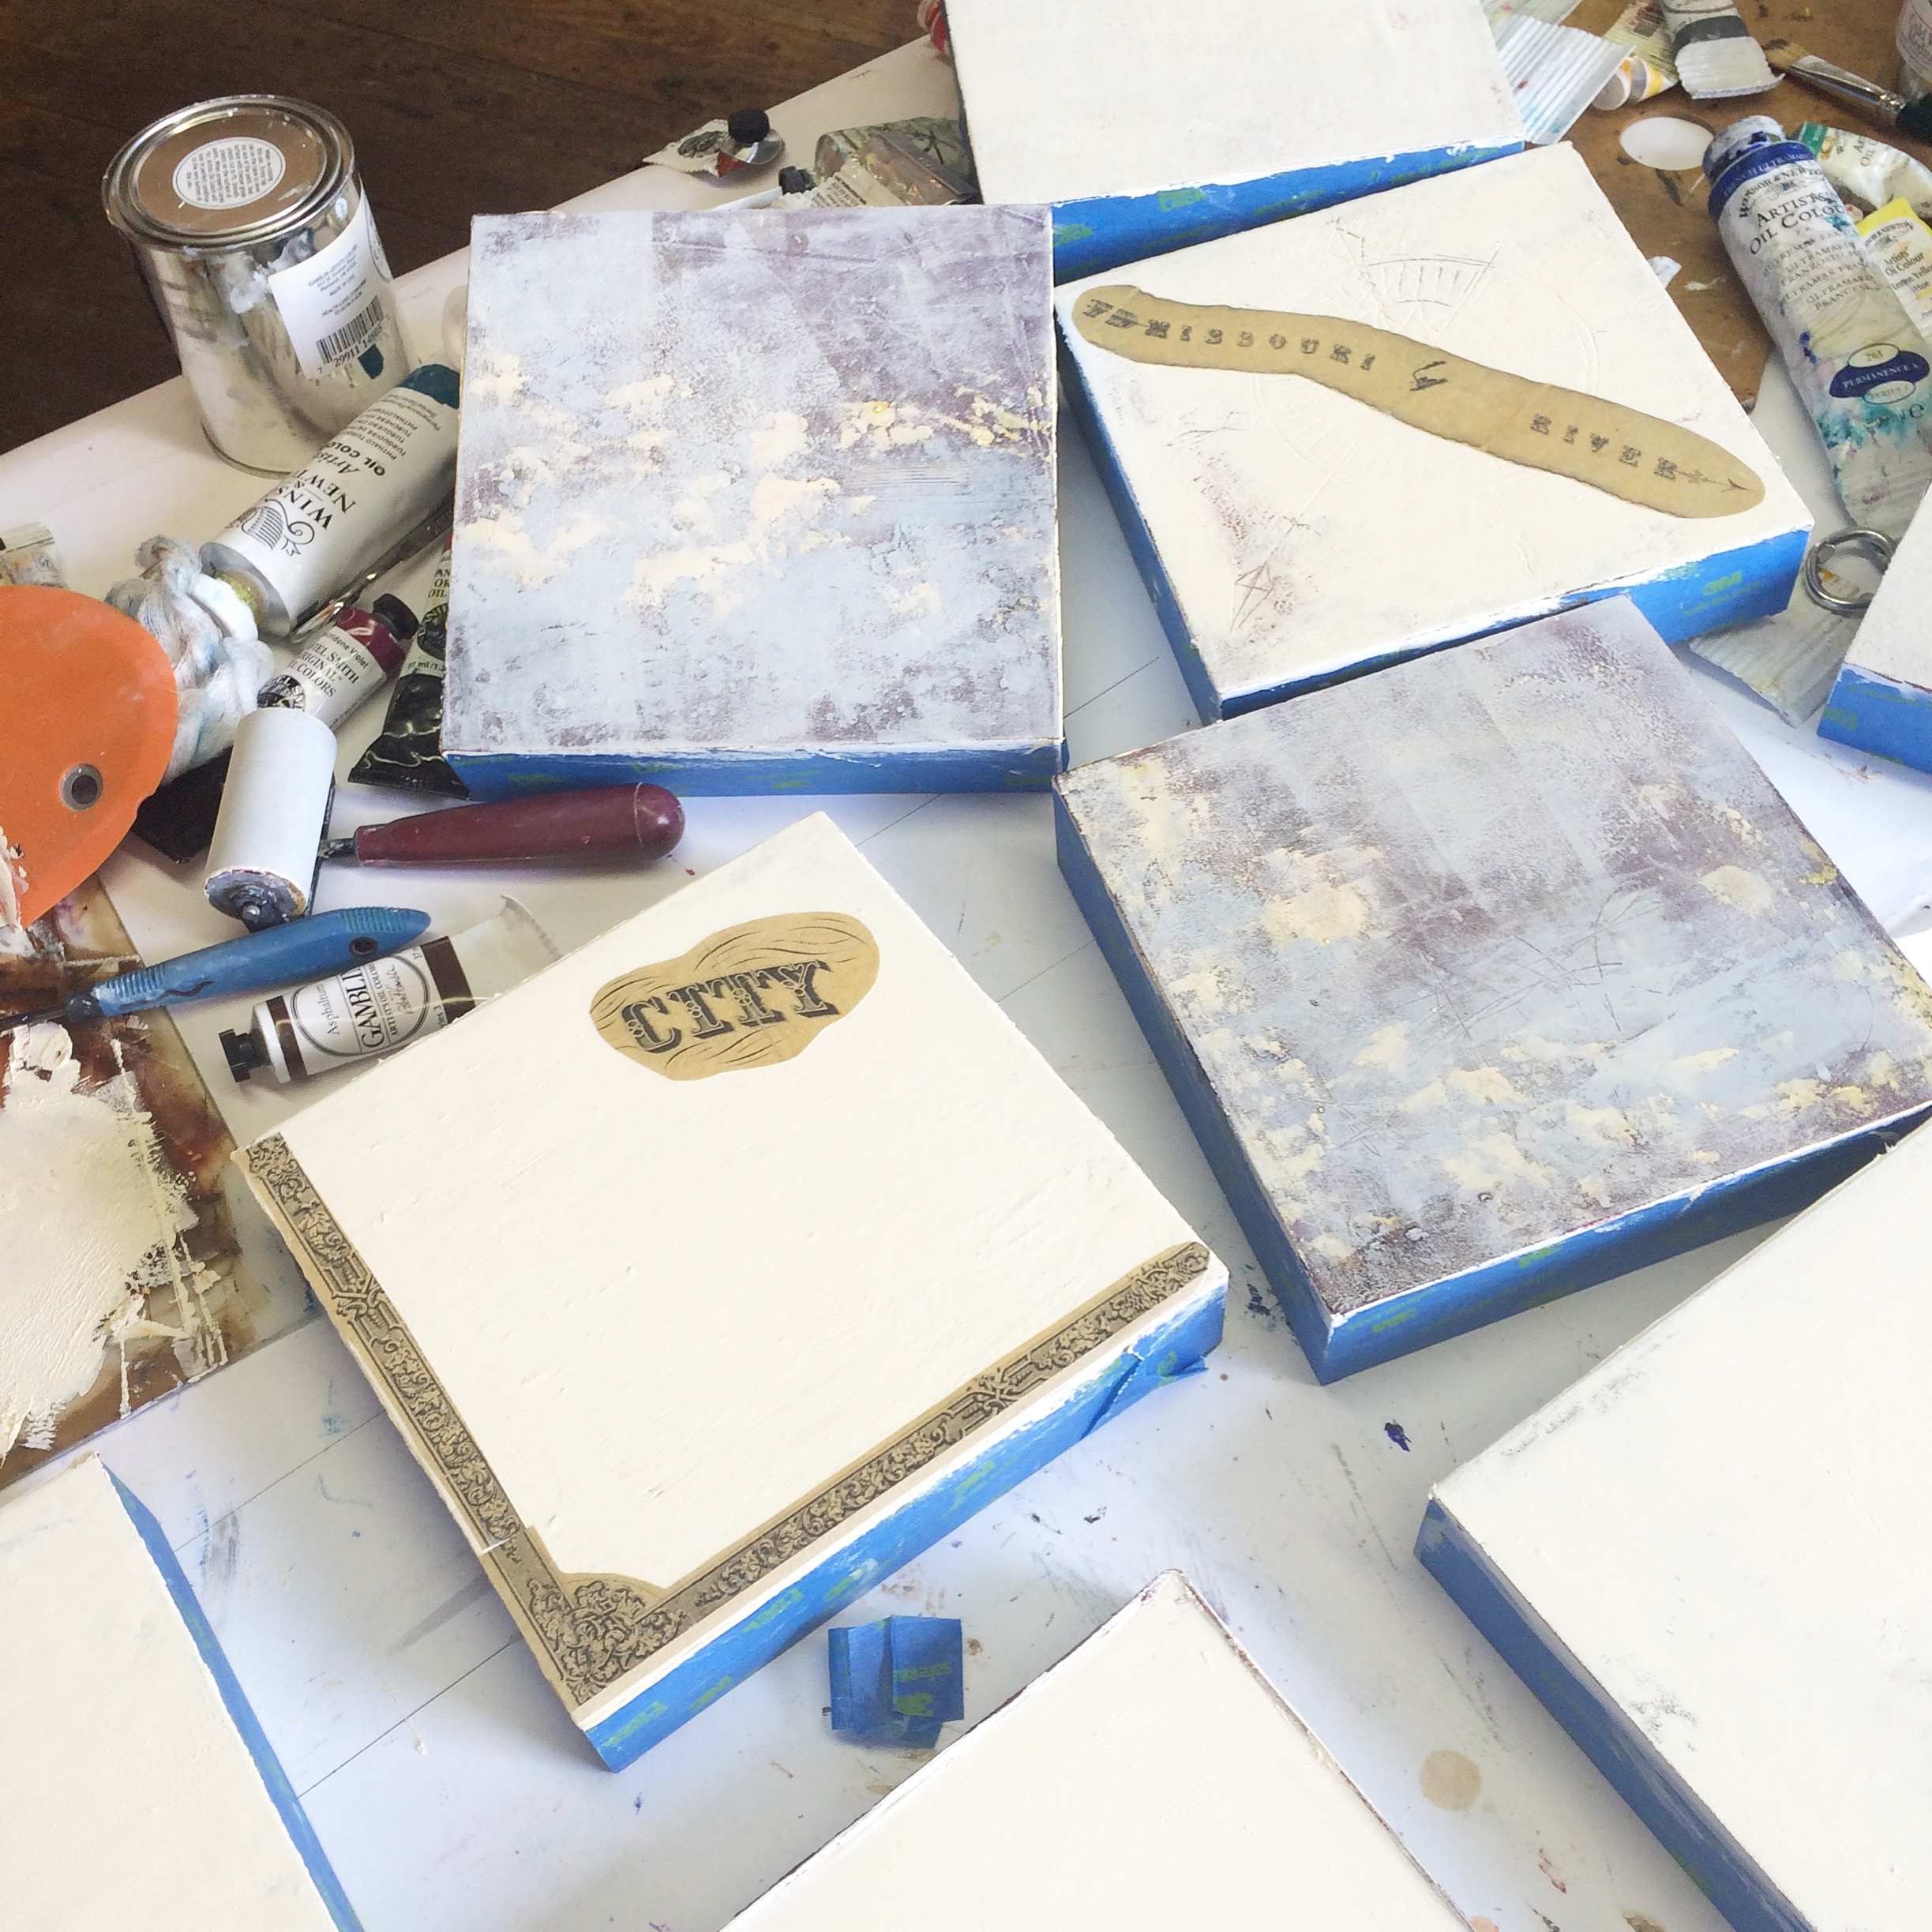 about 10 panels in various stages of layering, collaging and other interventions.